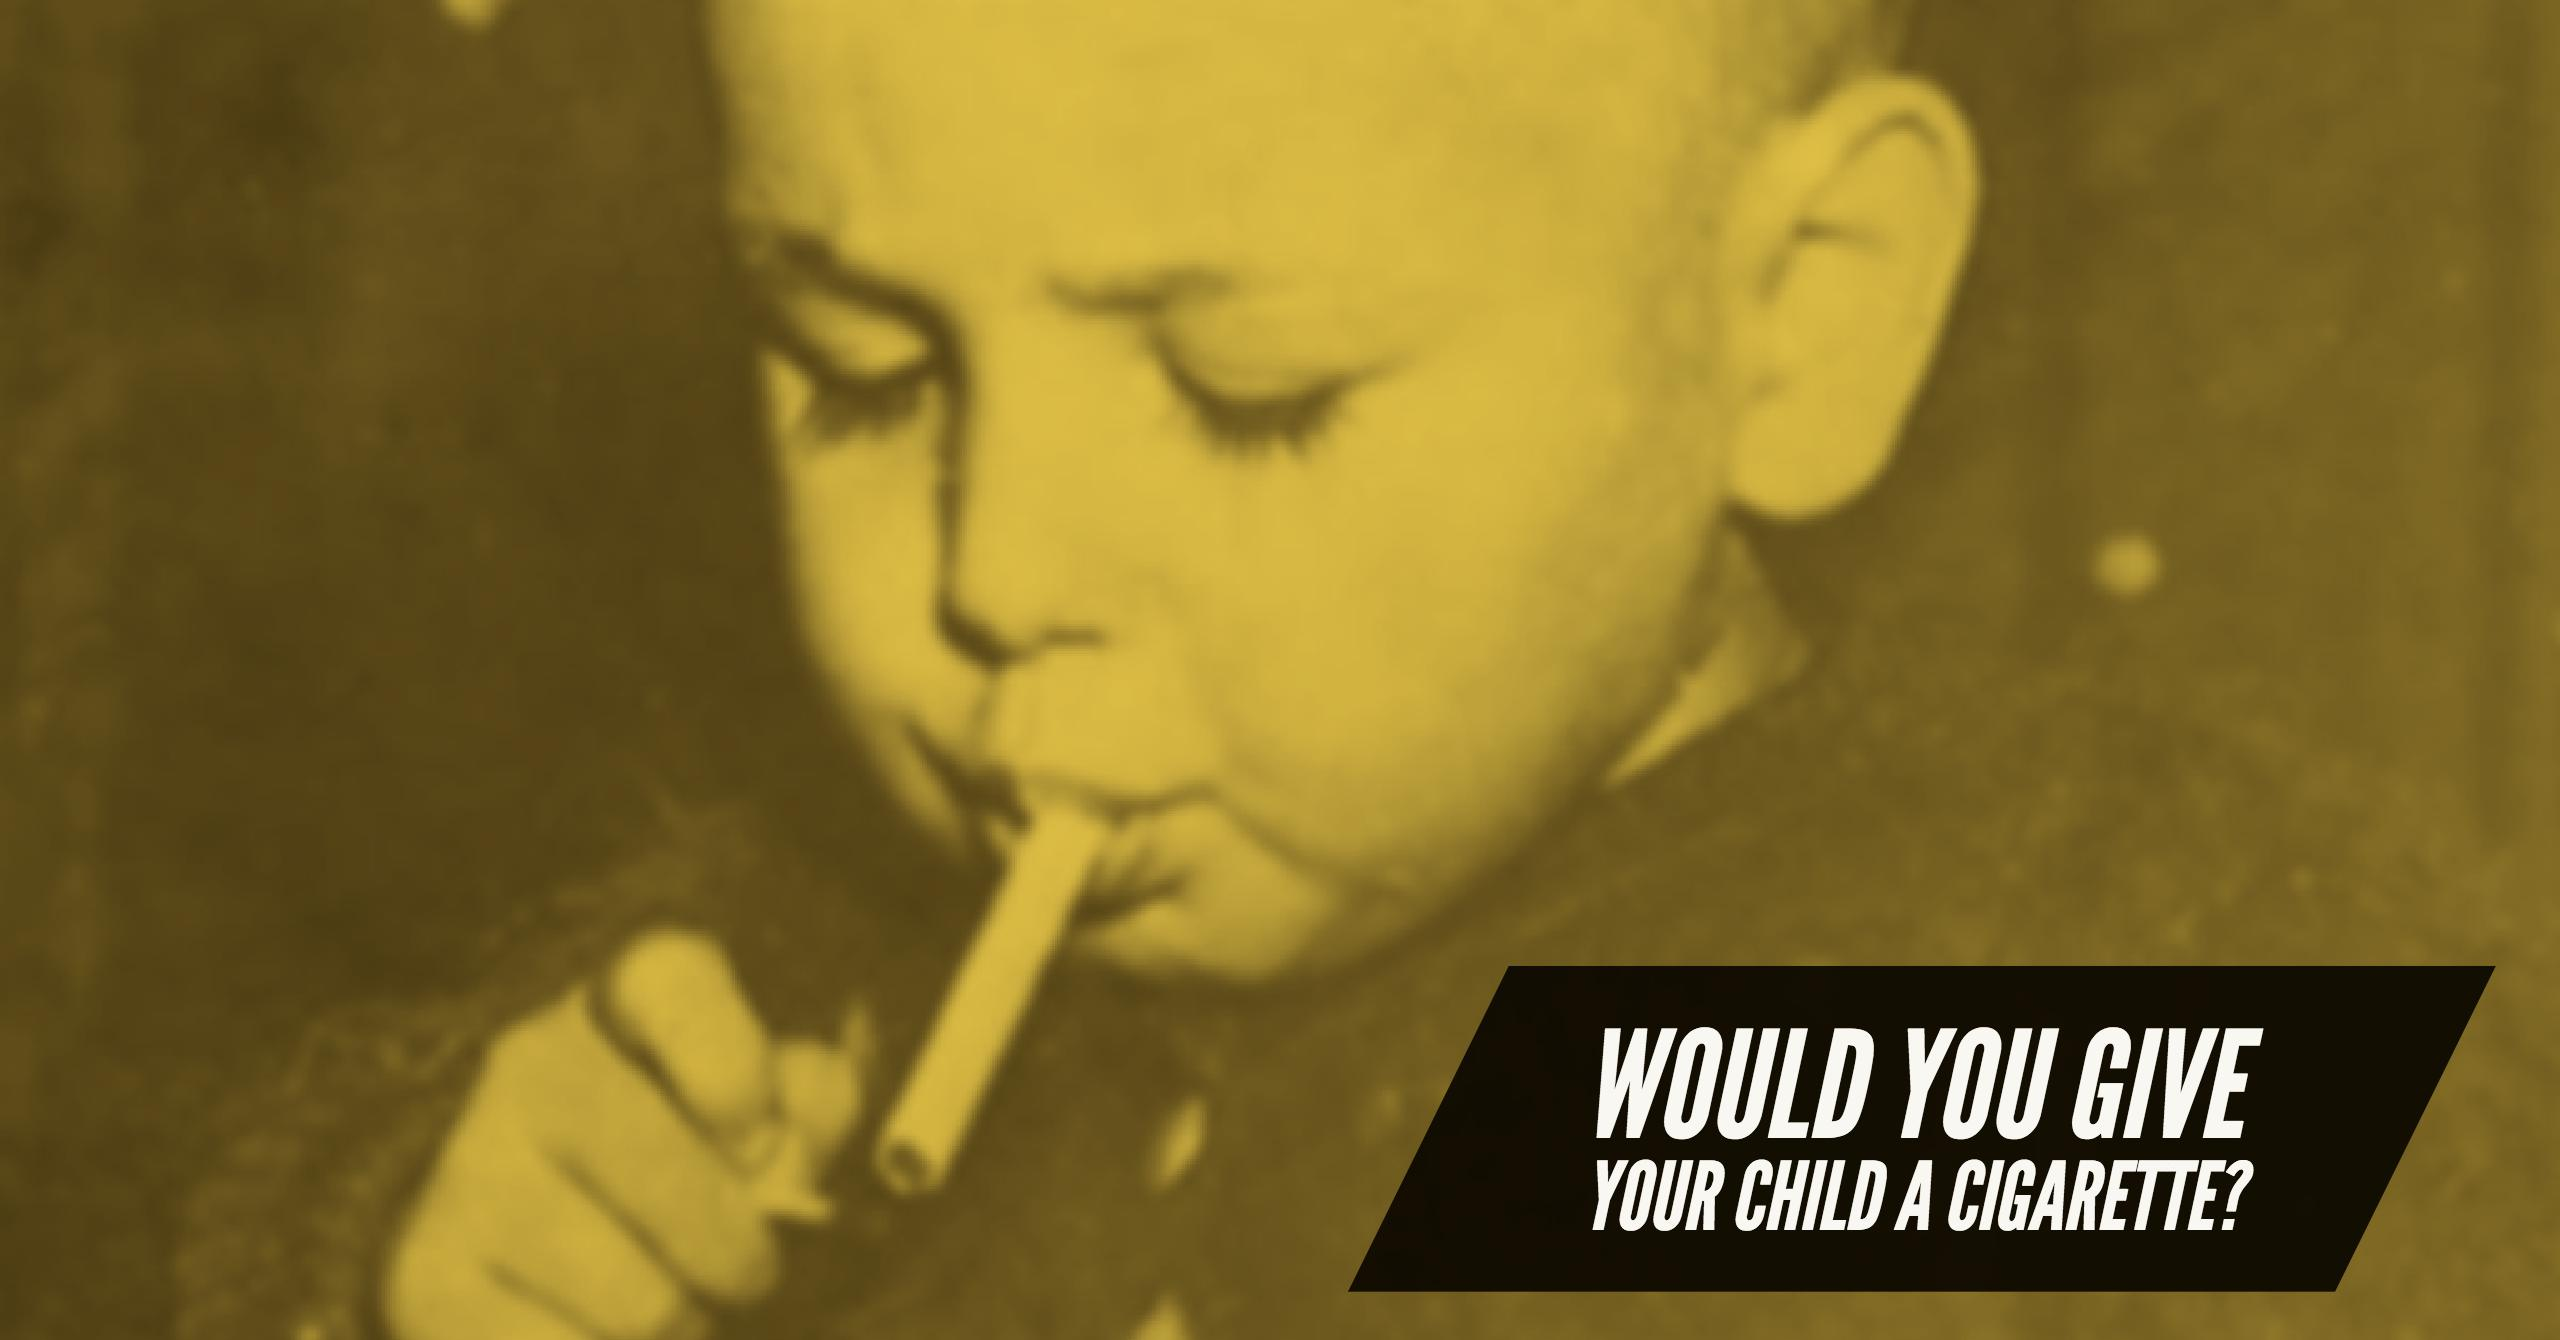 Would You Give Your Child a Cigarette?